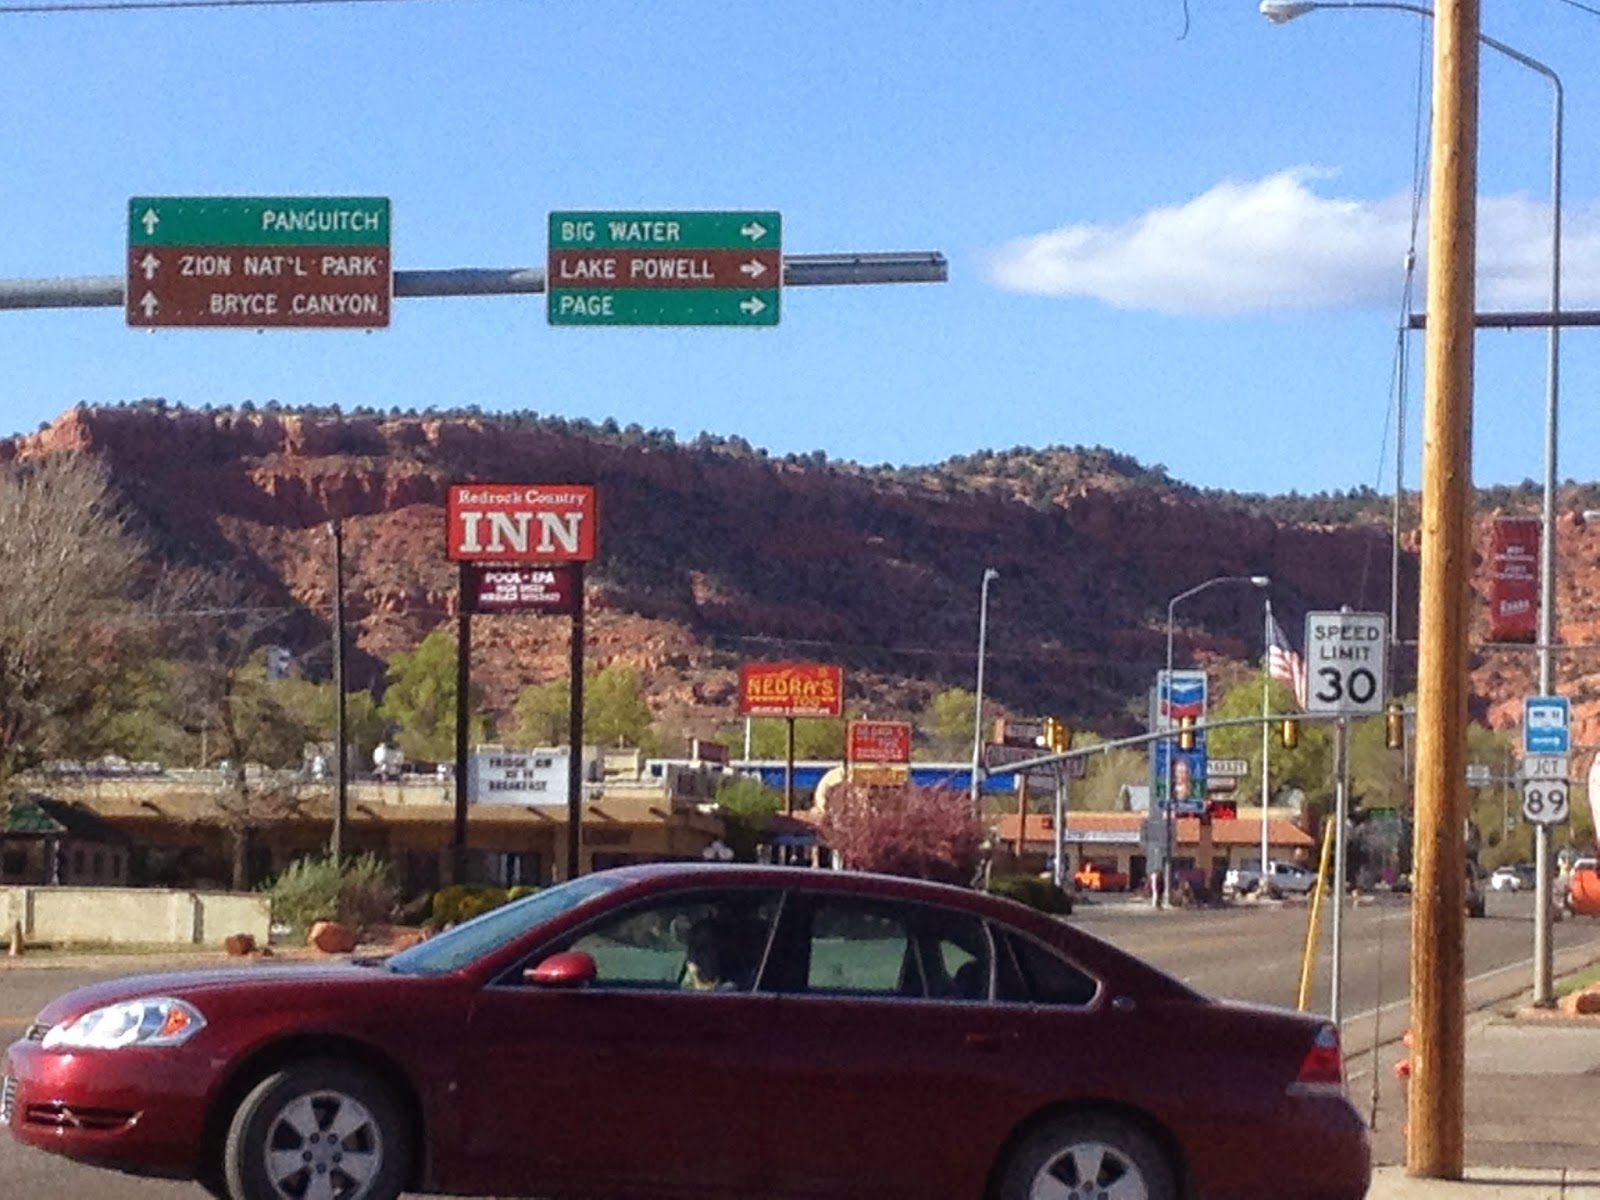 Road signs on US Route 89 in Kanab Arizona